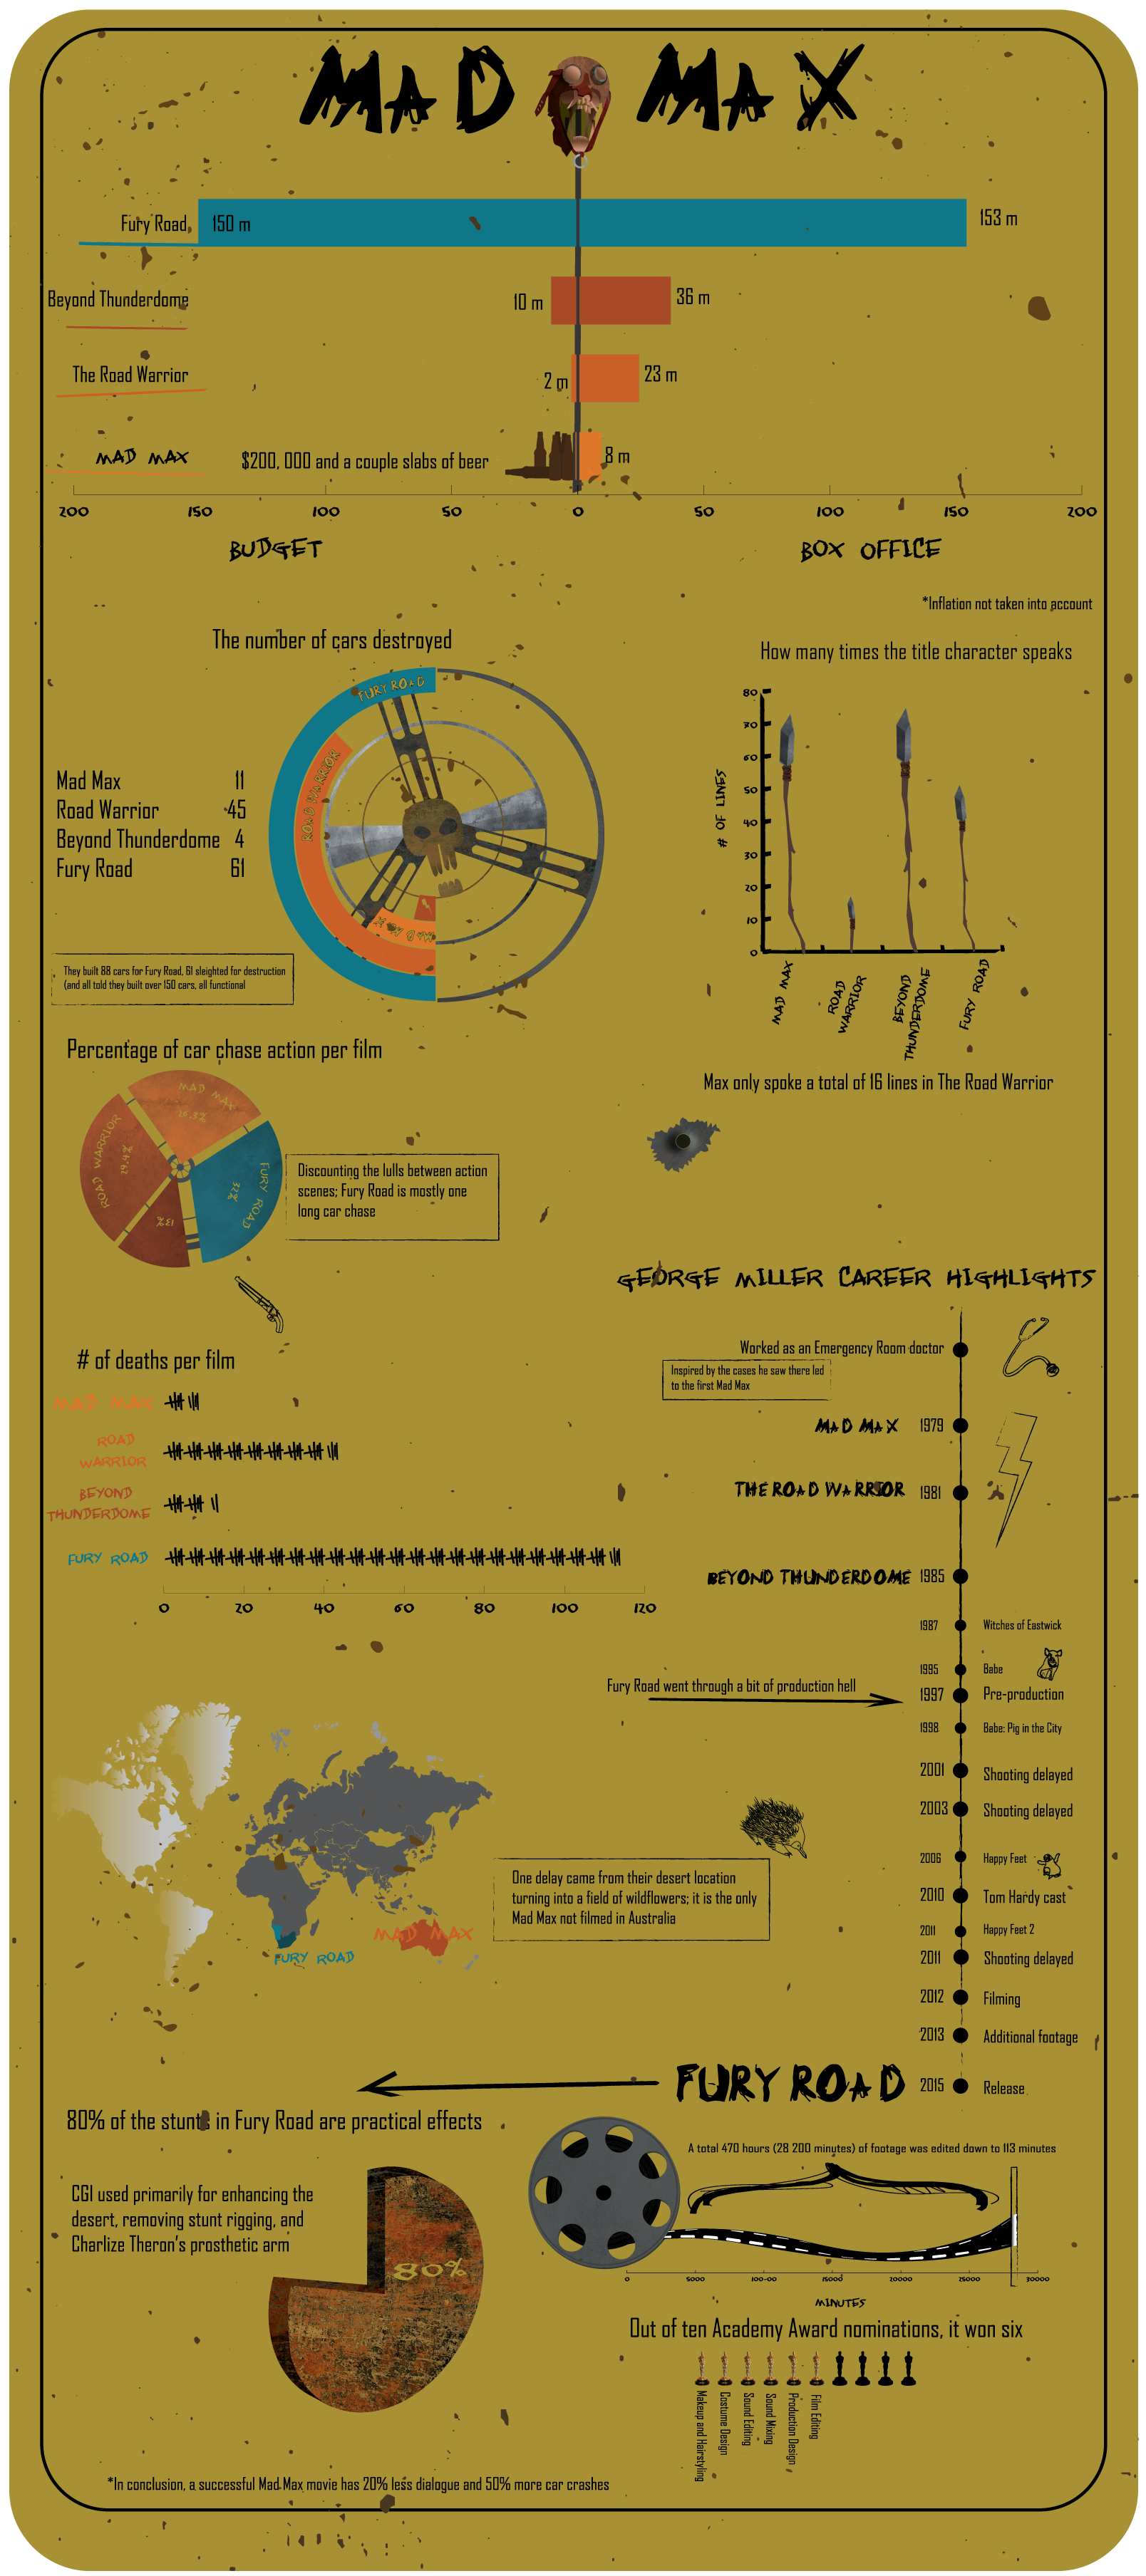 Mad Max - Mad Max Infographic | A look at the numbers behind the Mad Max film franchise.